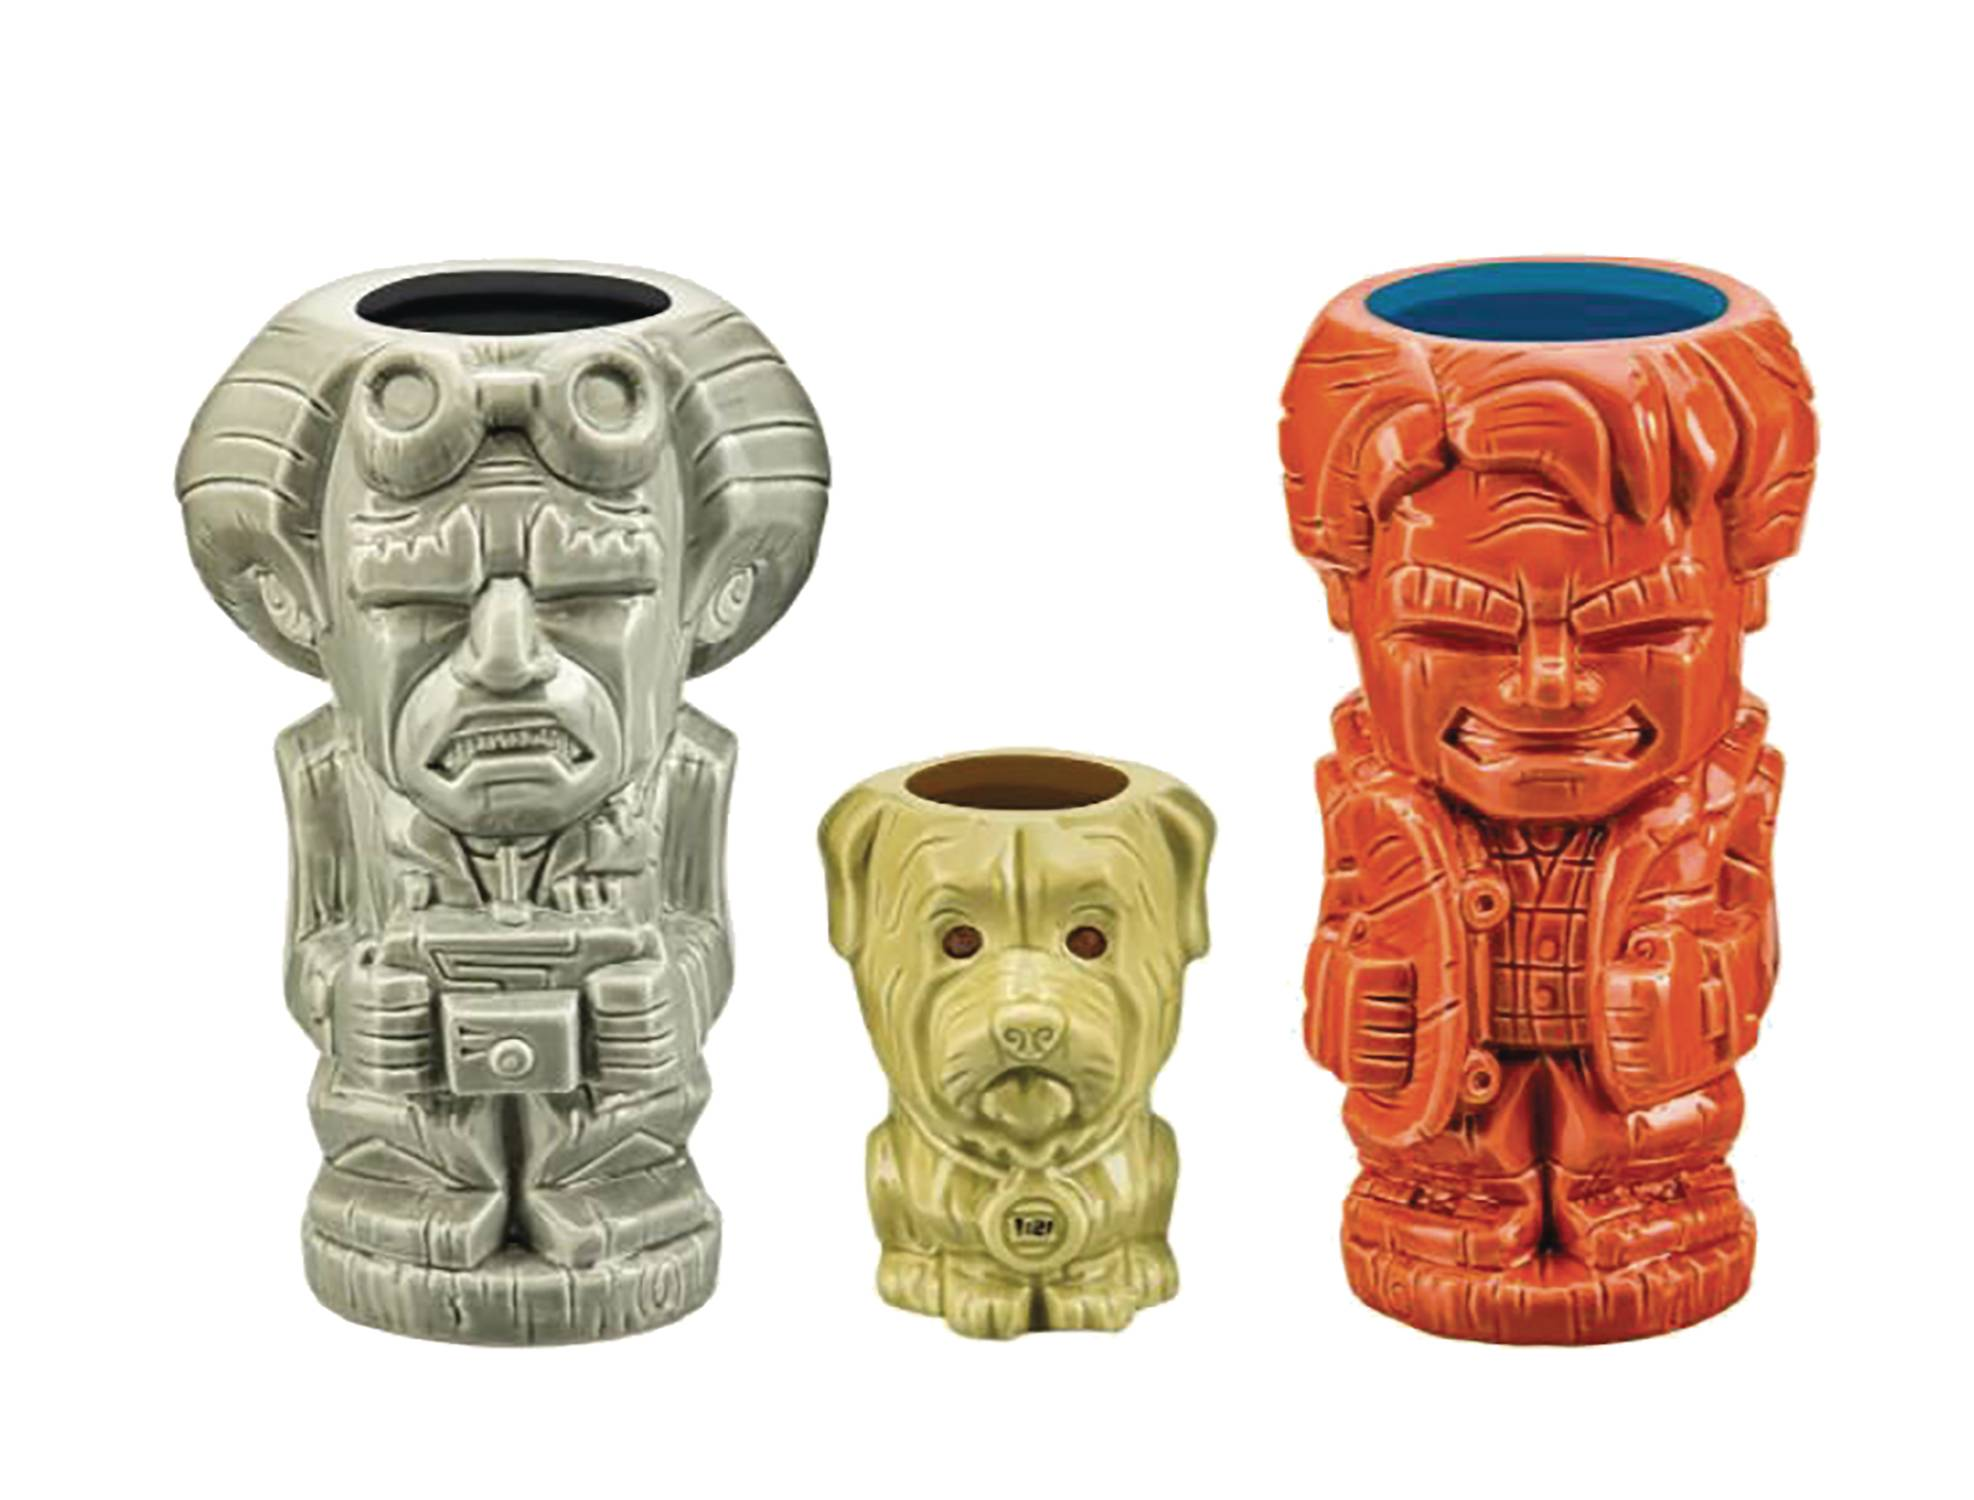 BACK TO THE FUTURE TIKI MUG 3PC SET